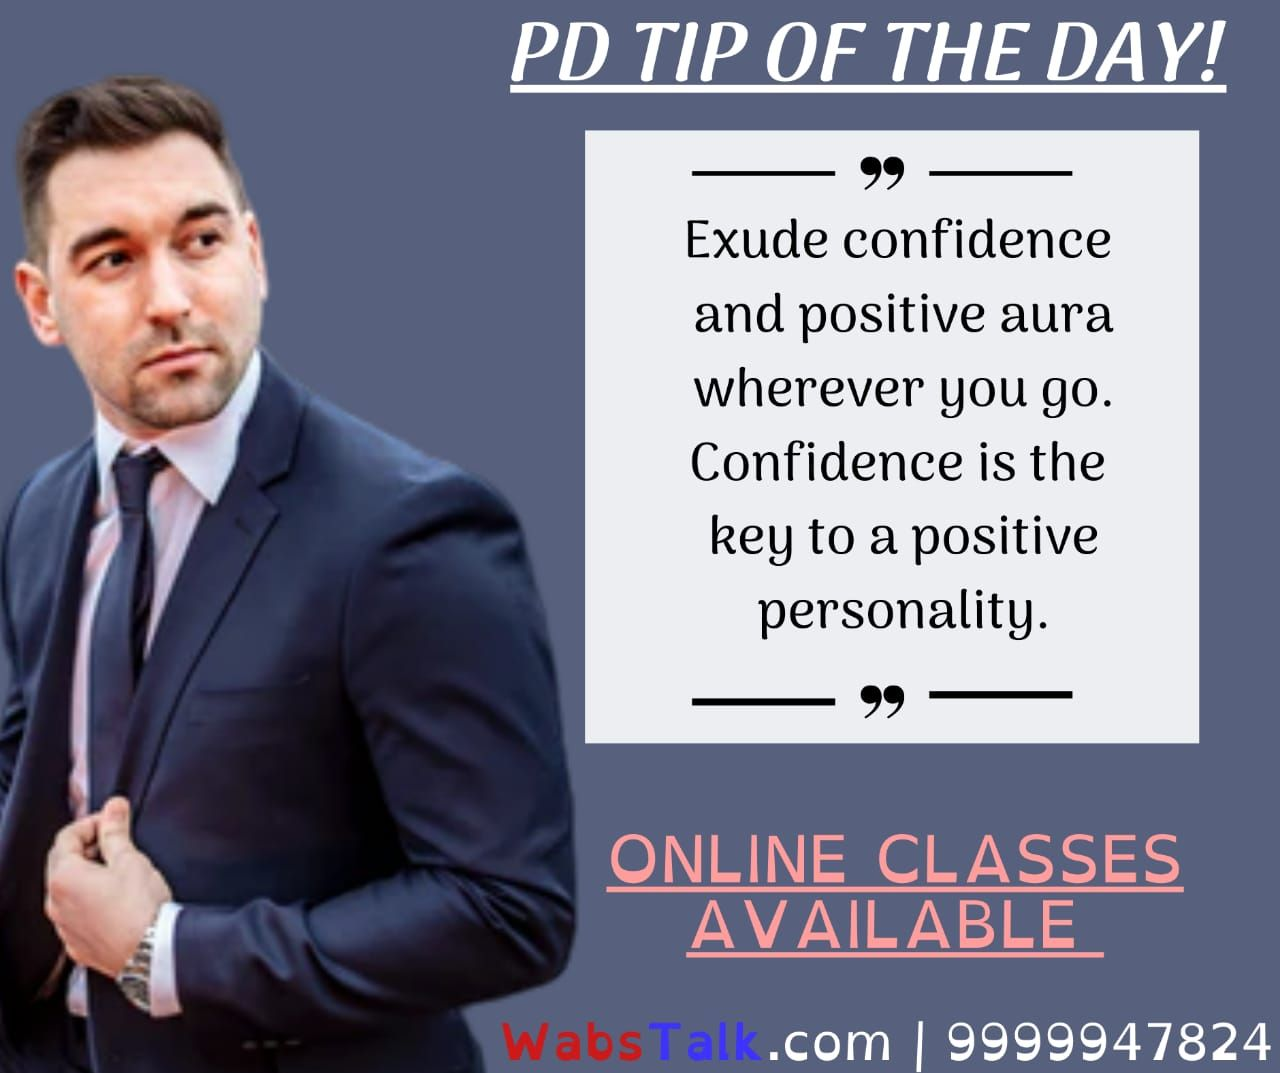 (#Join: 9999947824)  Personality Development Tip of the Day!  Exude confidence and positive aura wherever you go. Confidence is the key to a positive personality.  Note: Online Soft Skills Sessions Available.  #website: wabstalk.com  #lesson #lessonlearned #lessonslearned #lessons #lessonslearnedinlife #lessonoftheday #lessonsoflife #lessonsinlife #lifelesson #lessonlearnt #personalitydevelopment #betteryou #onlineclass